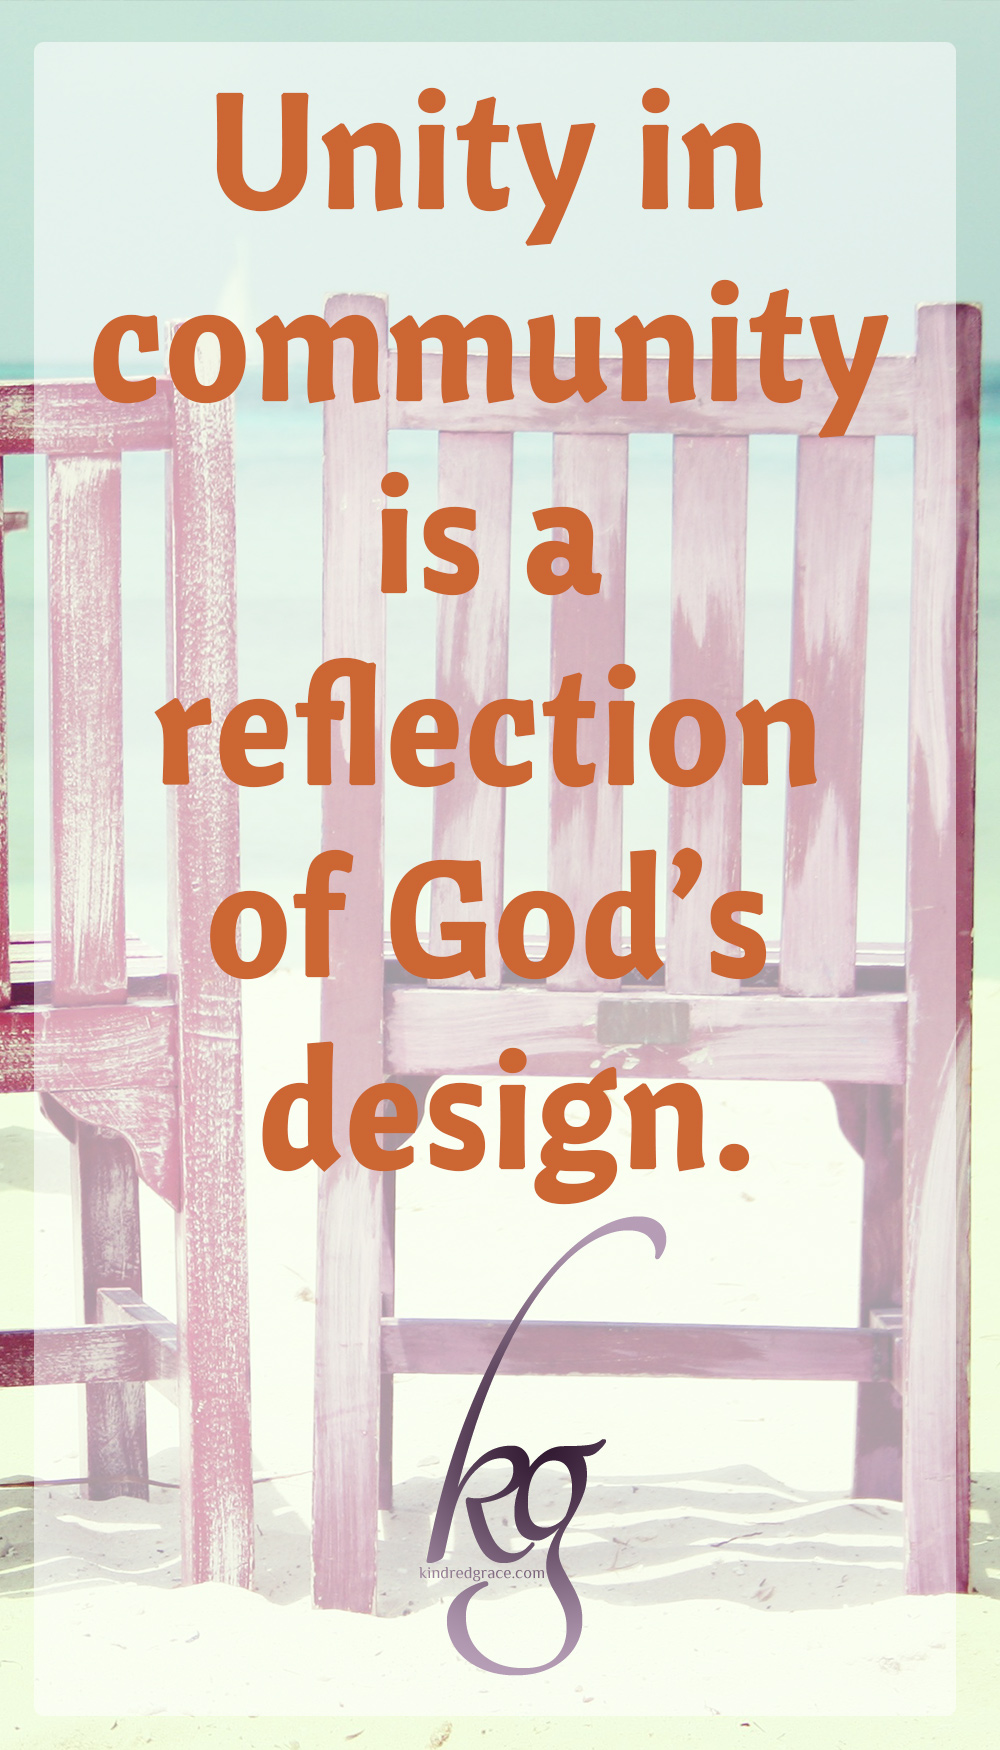 It's the companionship we crave, don't you think? And yet it is the fear of rejection that keeps us from looking for it. Yes, we long to be knit together with others, because unity in community is a reflection of God's design.